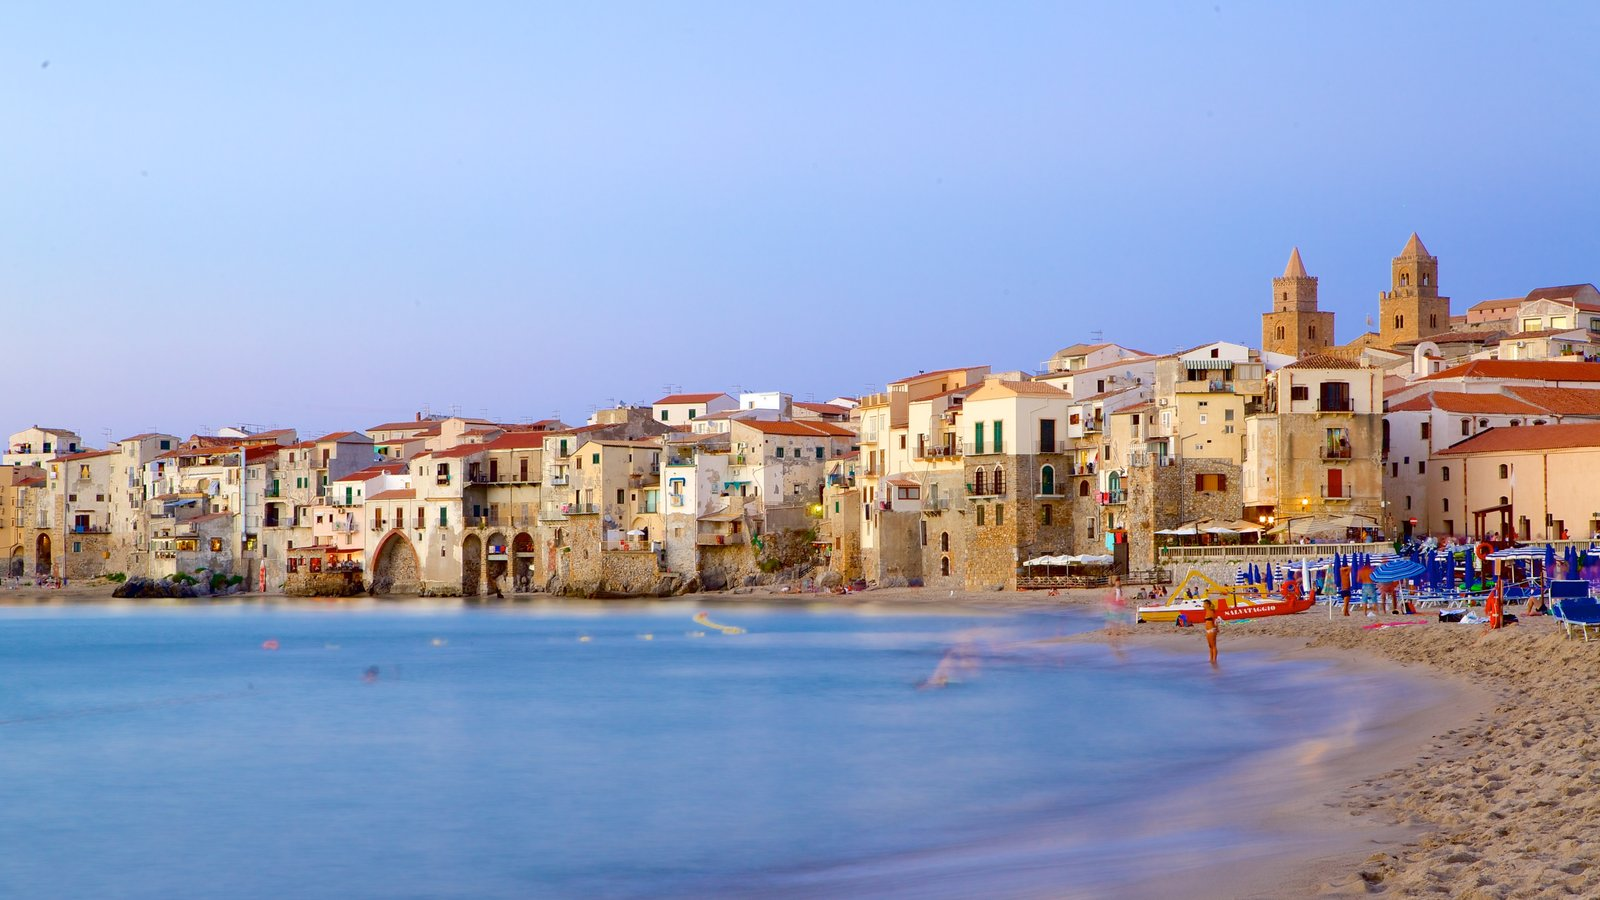 Cefalu showing a sandy beach and a coastal town